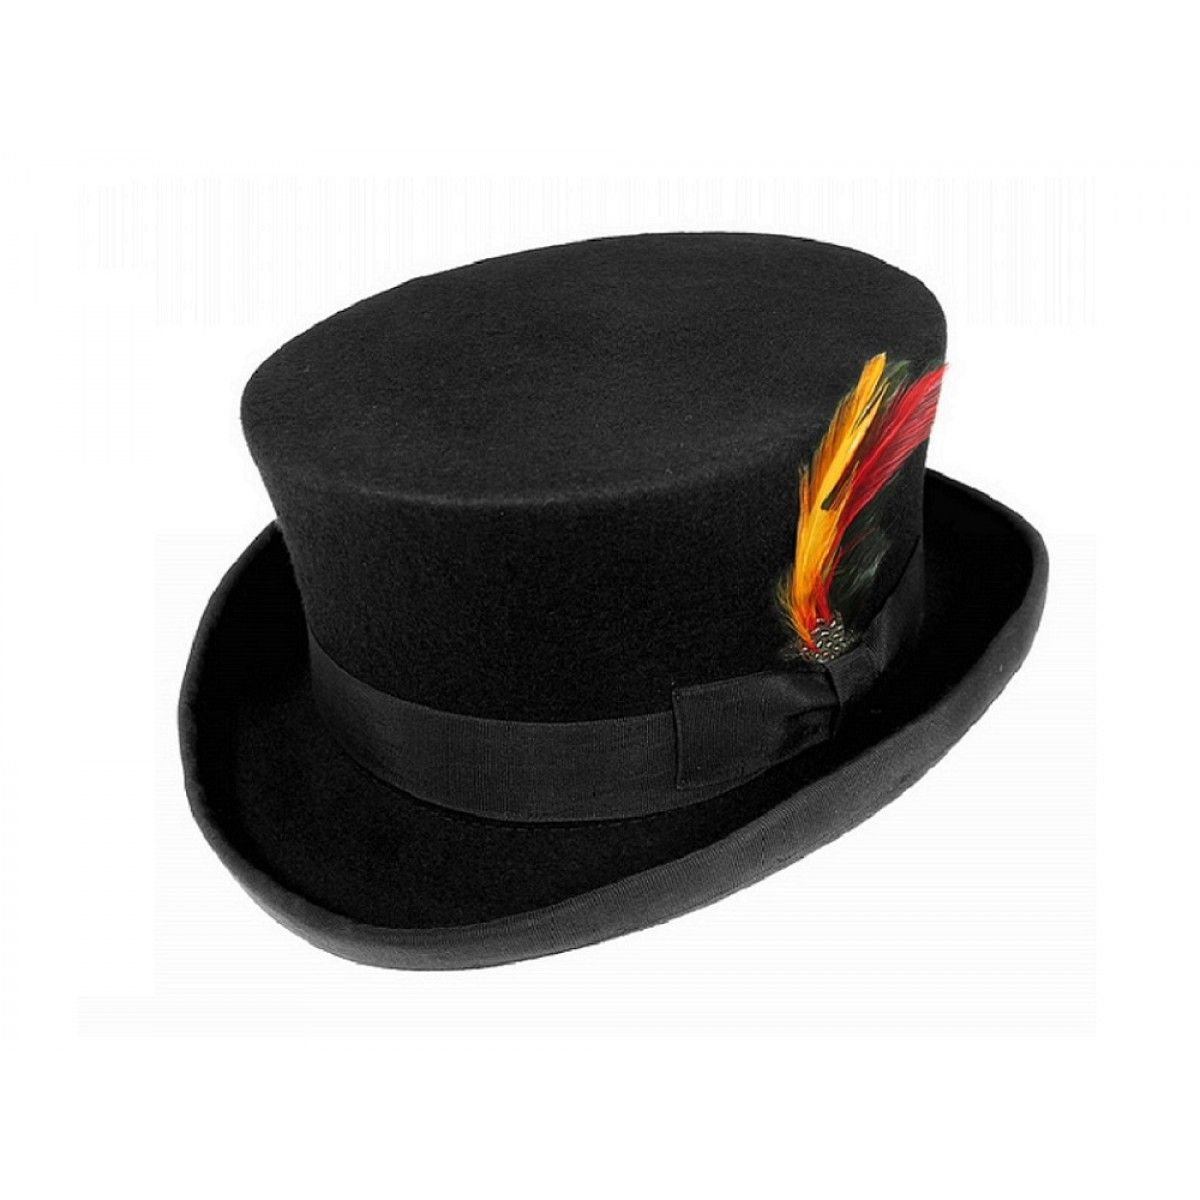 48f7e4fed09 Wool Felt Dickens Short Top Hat with approx 4 crown - Black ...